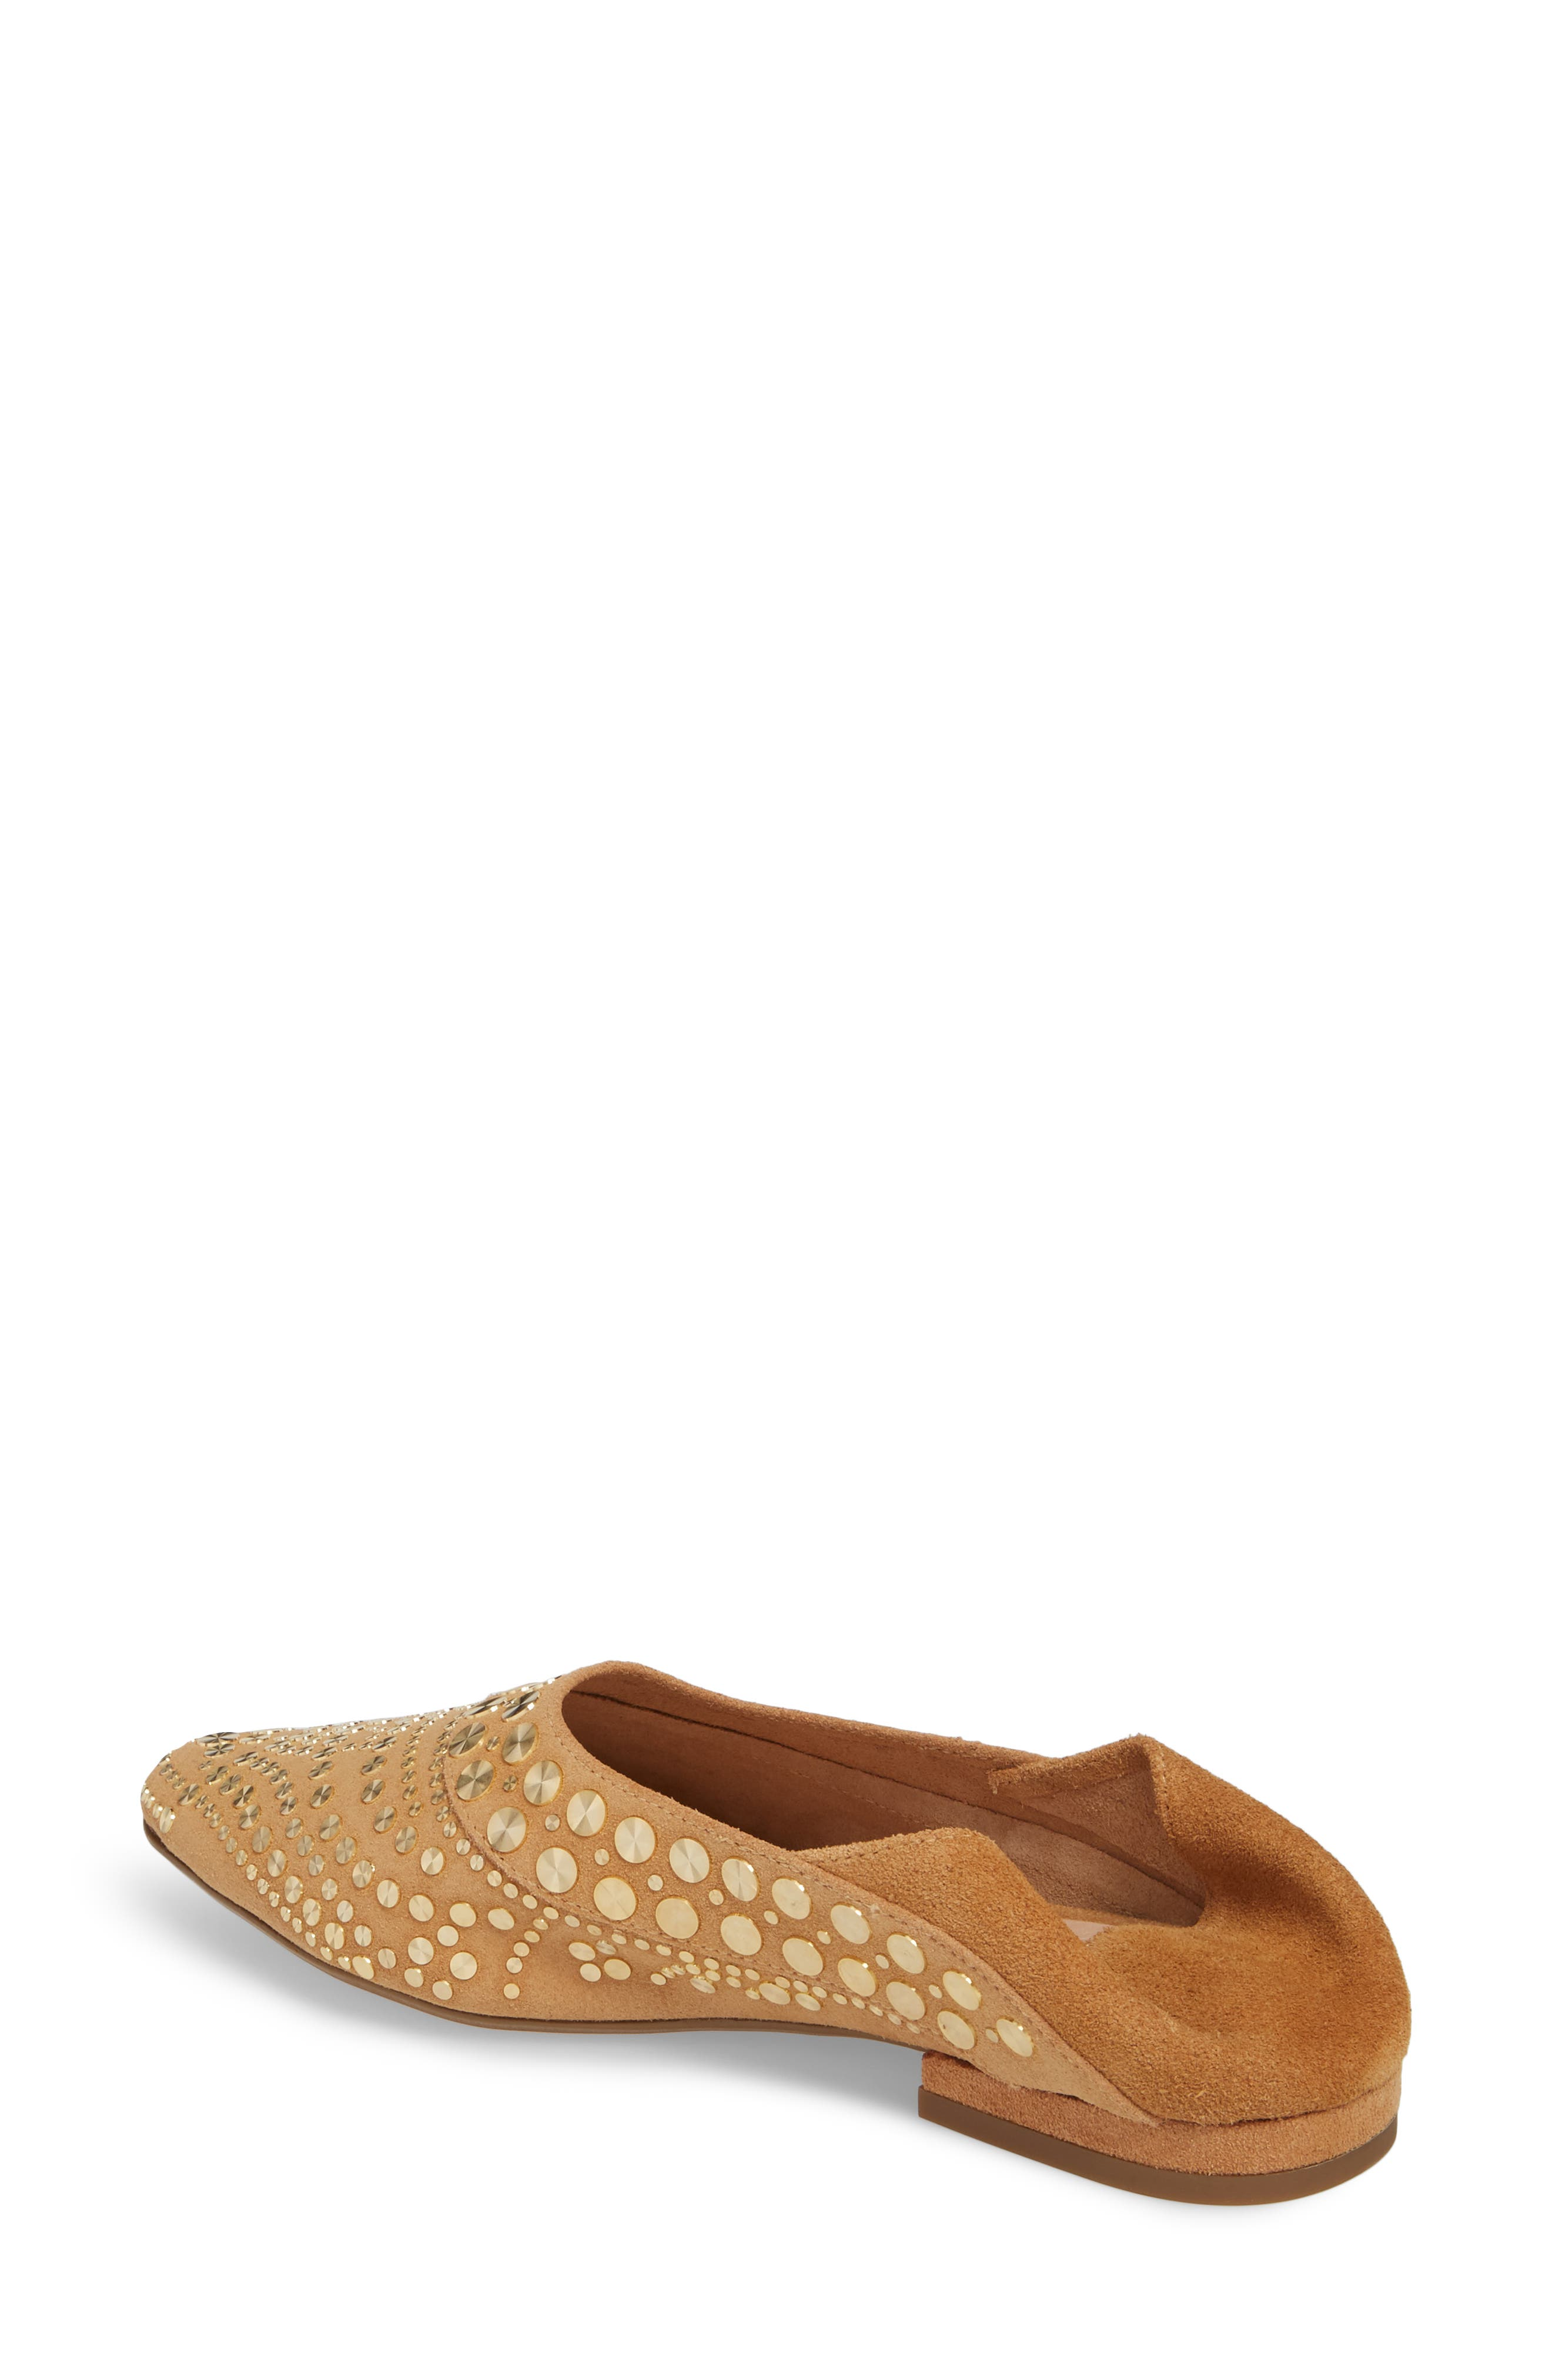 Mojito Convertible Flat,                             Alternate thumbnail 3, color,                             SAND SUEDE